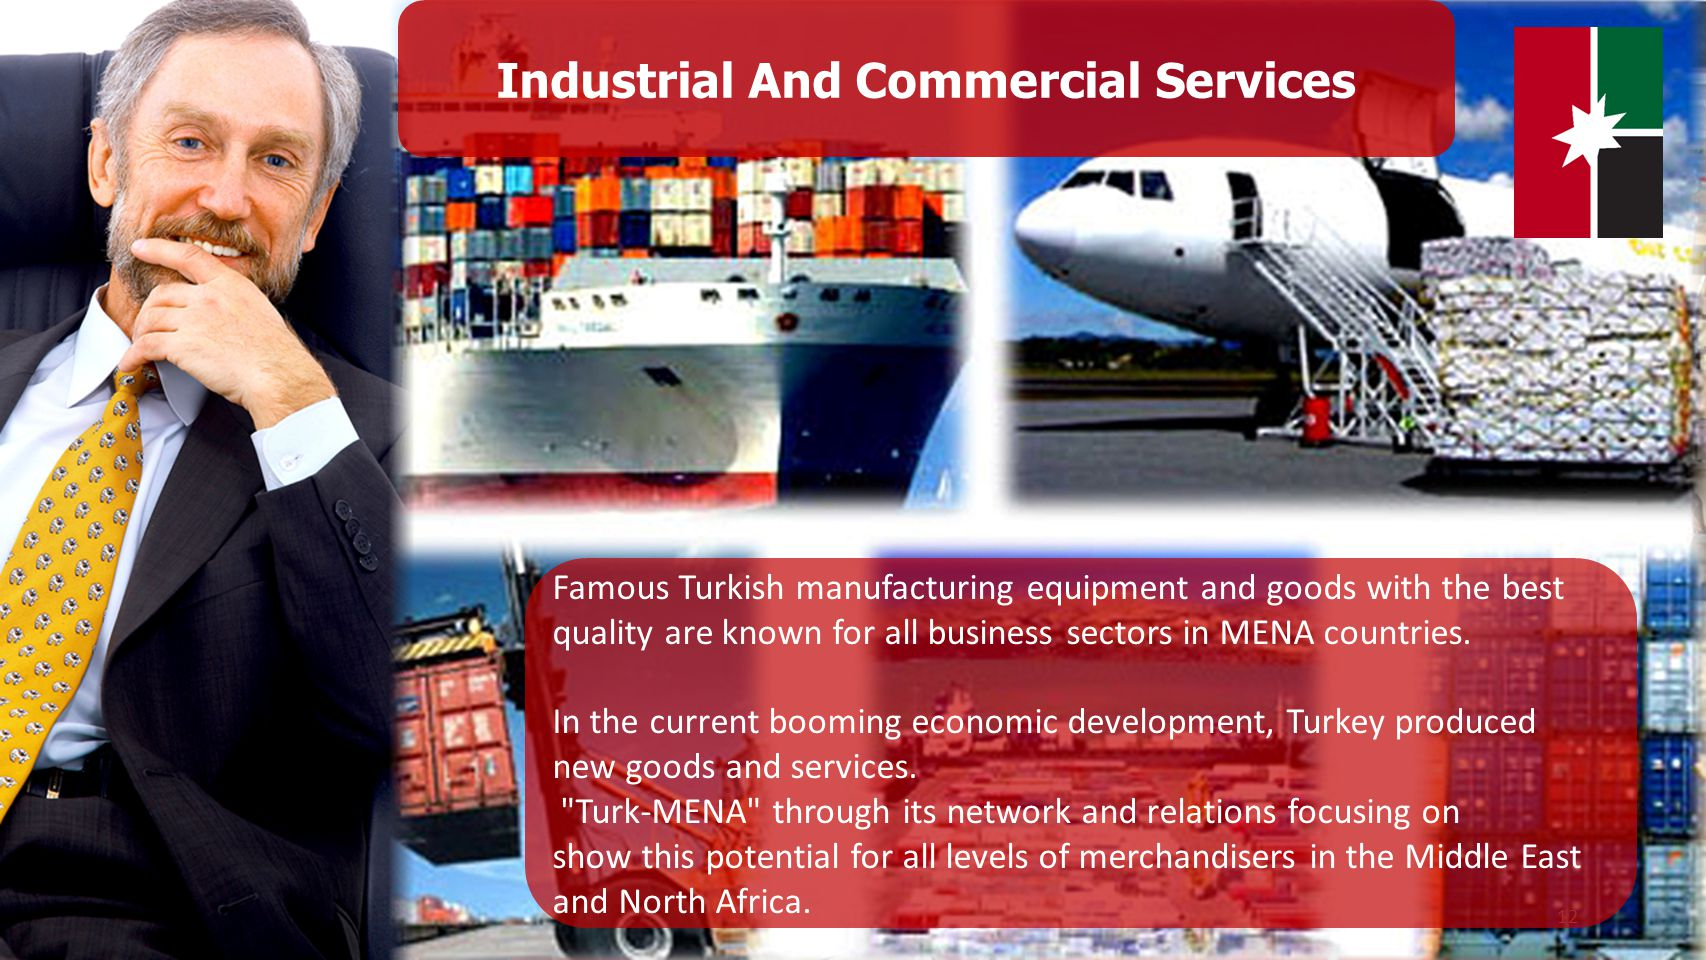 Industrial And Commercial Services